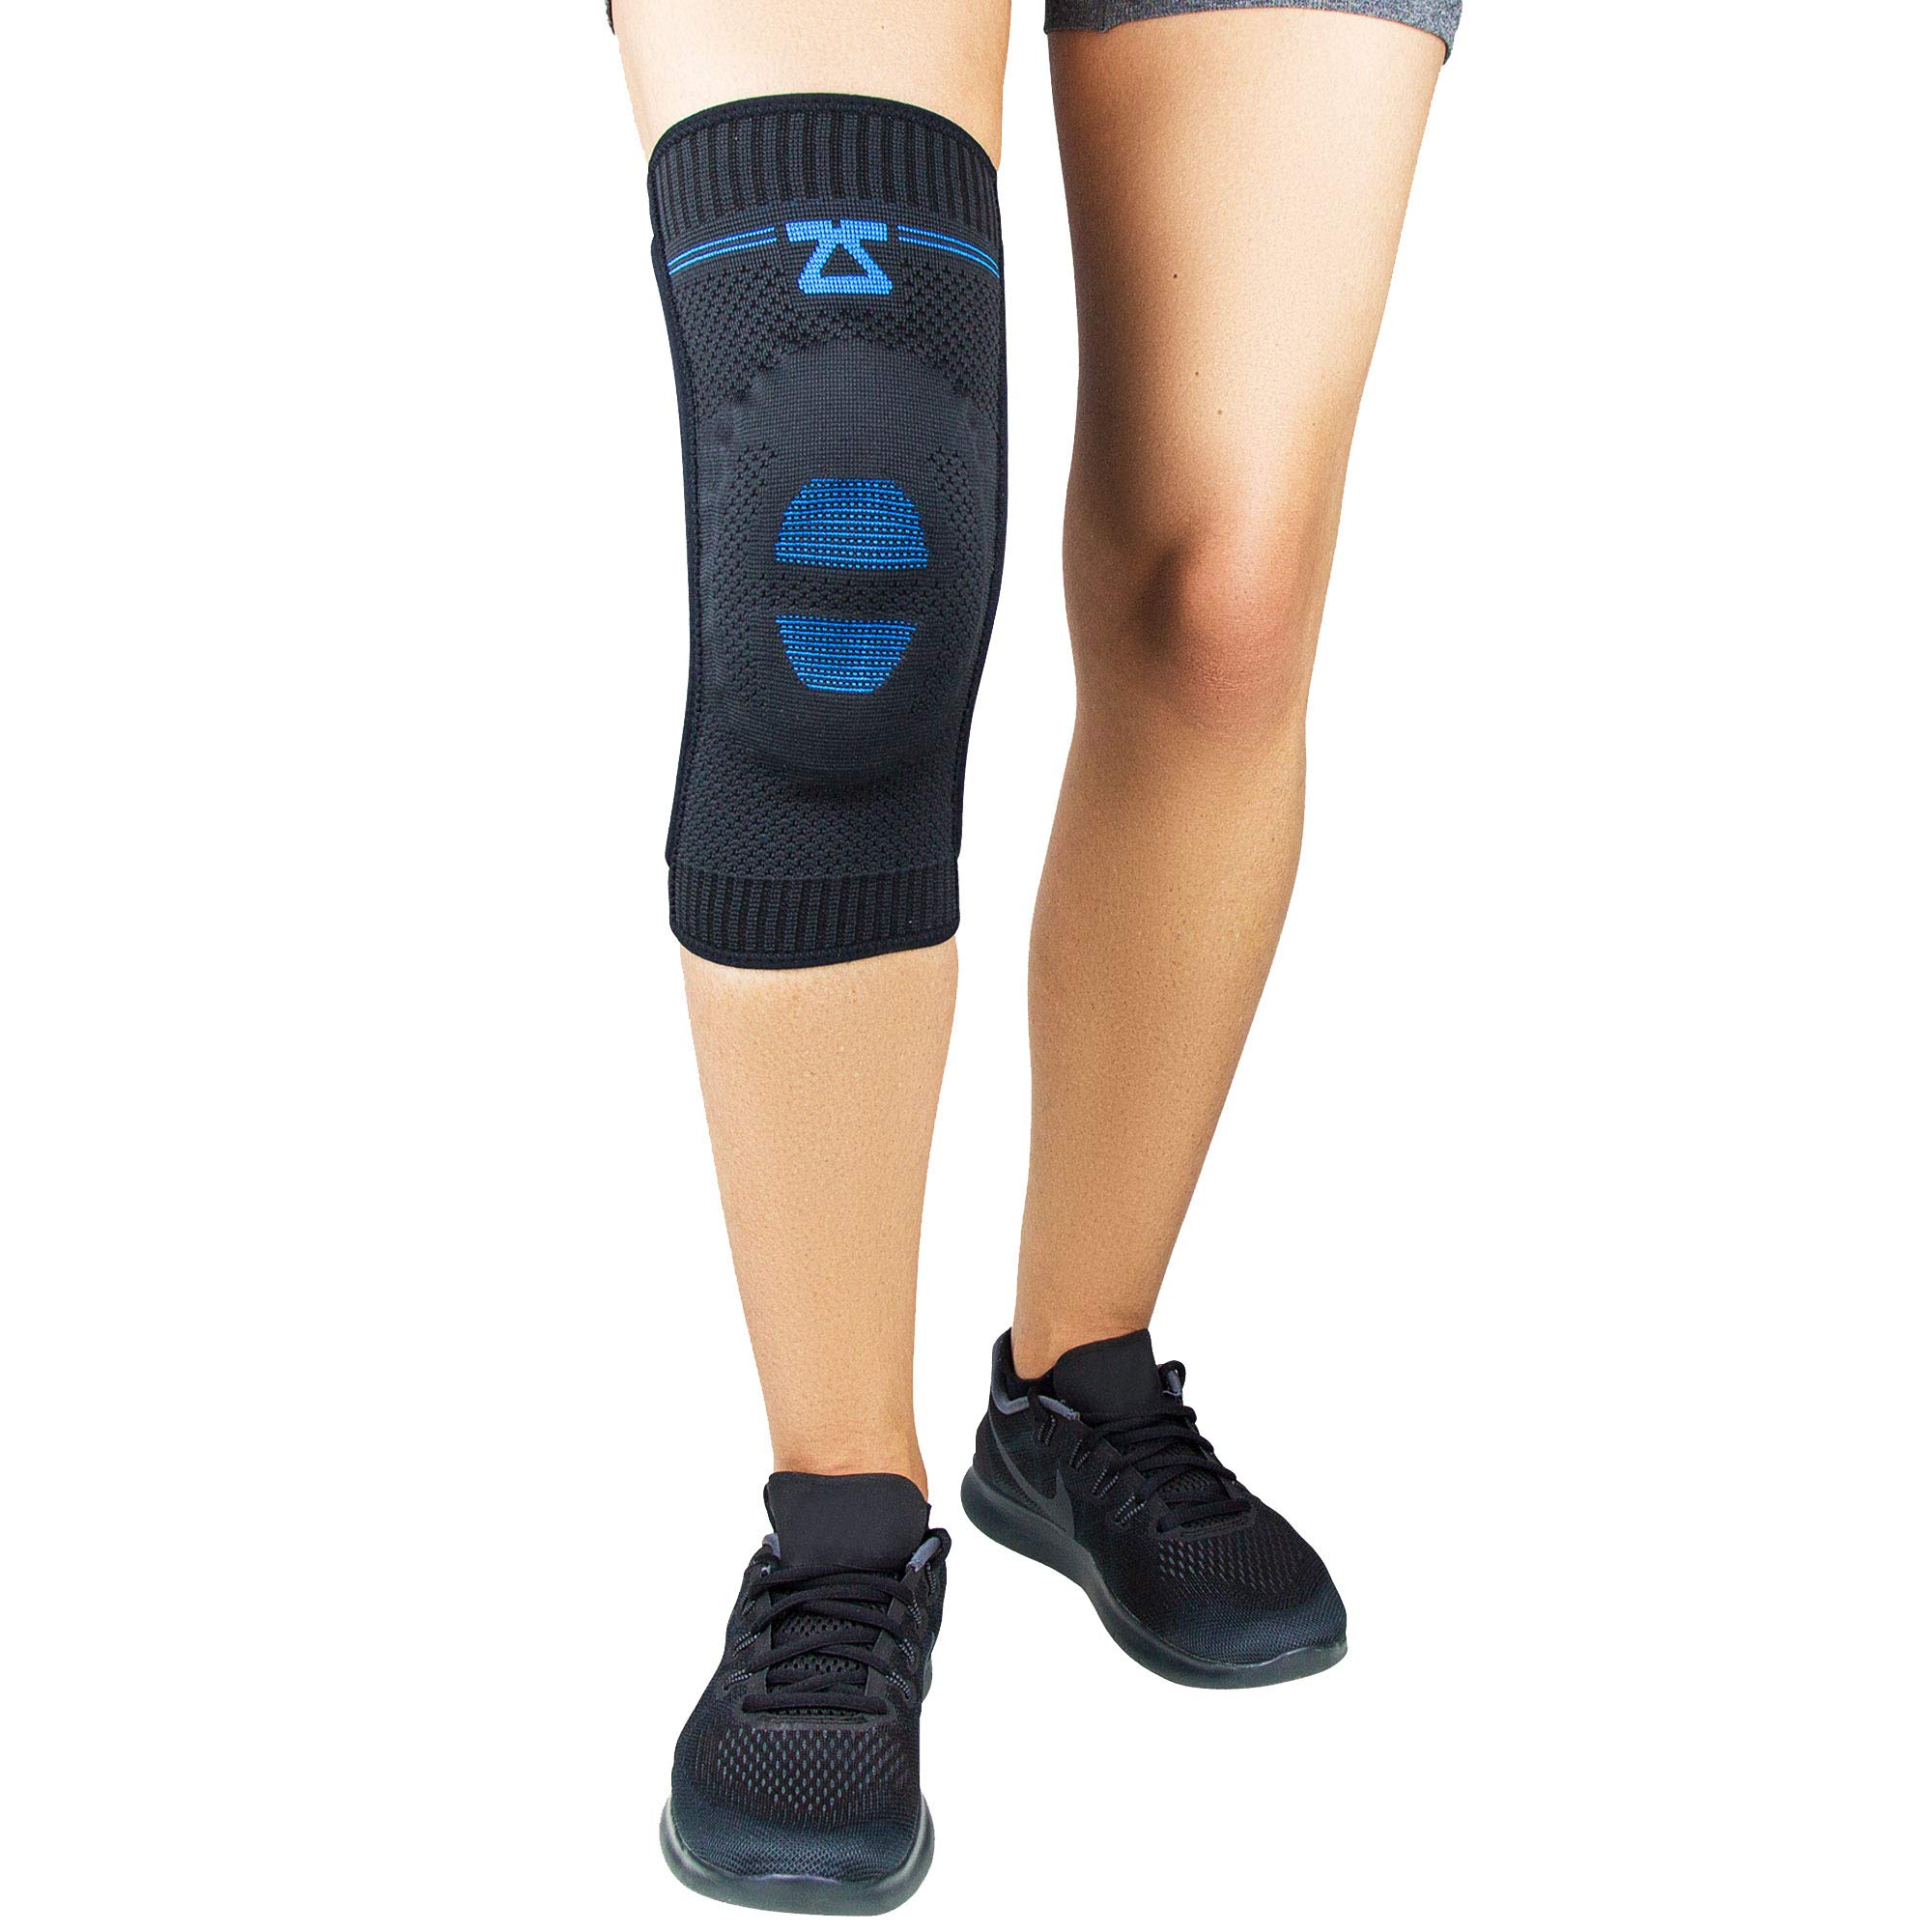 Zensah Elite Knee Compression Sleeve with Patella Gel Pad - Targeted Knee Support for Protection and Pain Relief – Knee Support for Running, Sports, Workout, Gym - Knee Brace (Black, Small)